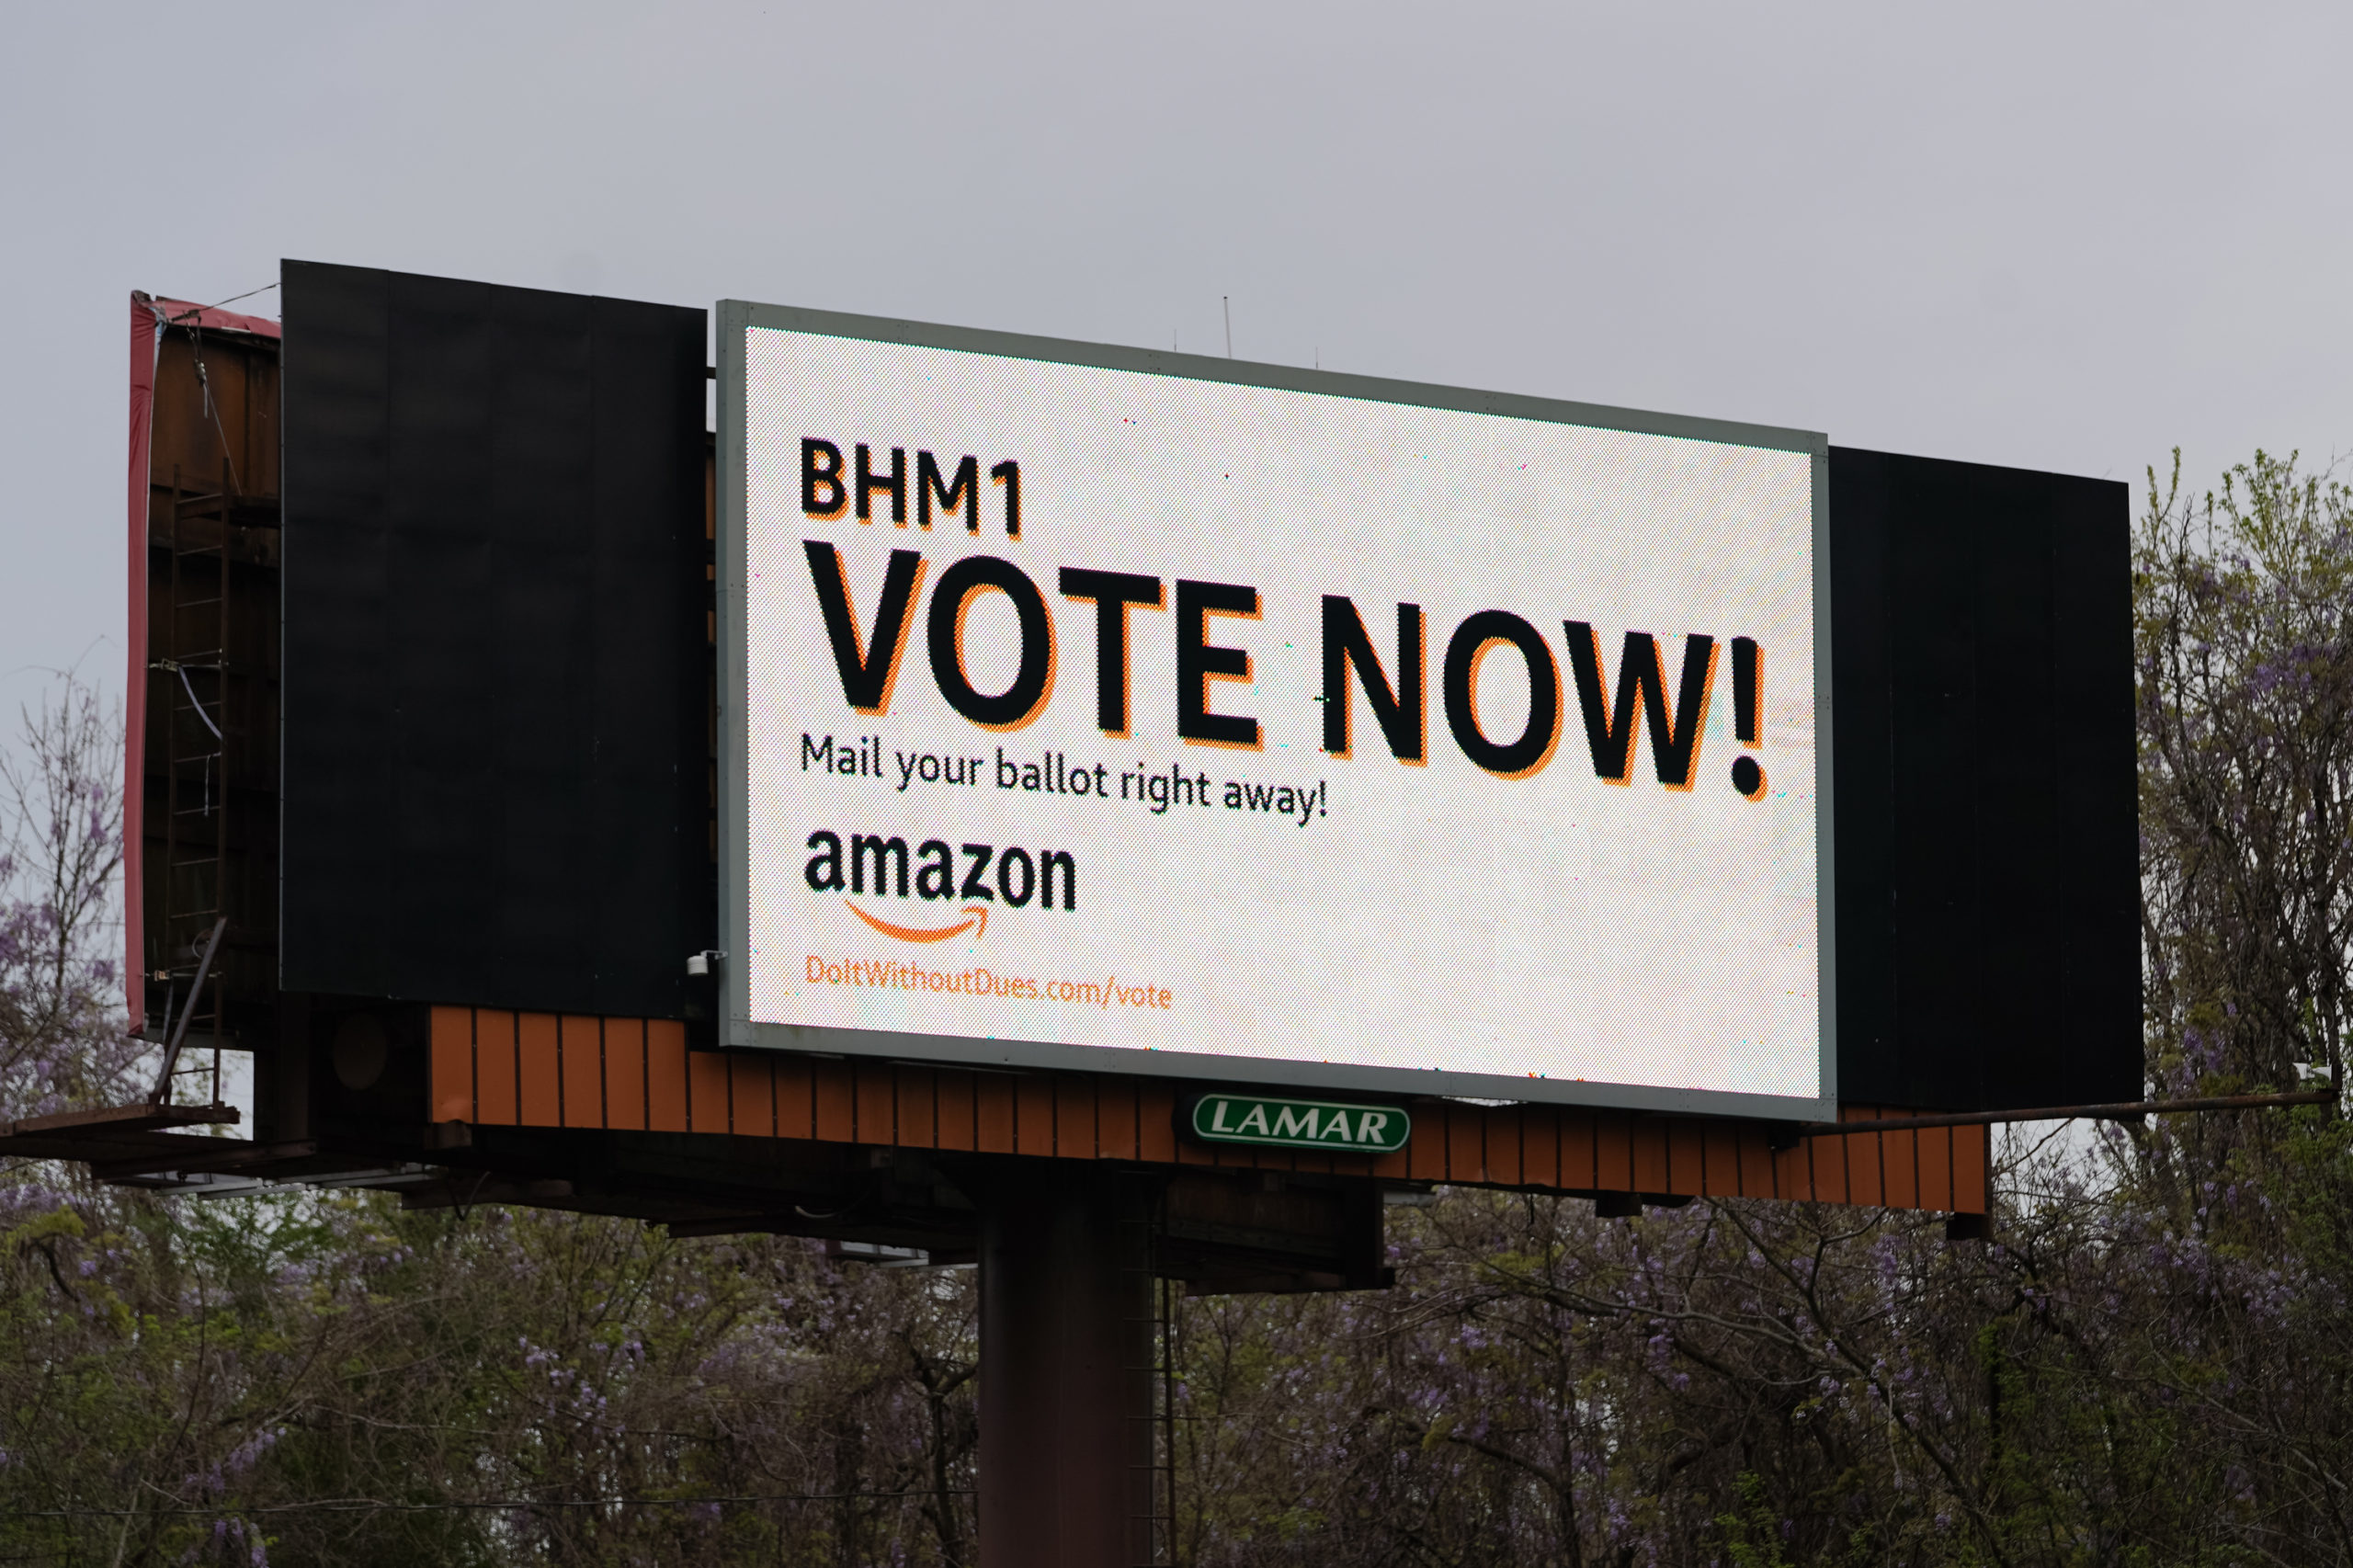 An Amazon-sponsored billboard urging employees to return their unionization ballots is seen on March 28 in Bessemer, Alabama. (Elijah Nouvelage/Getty Images)